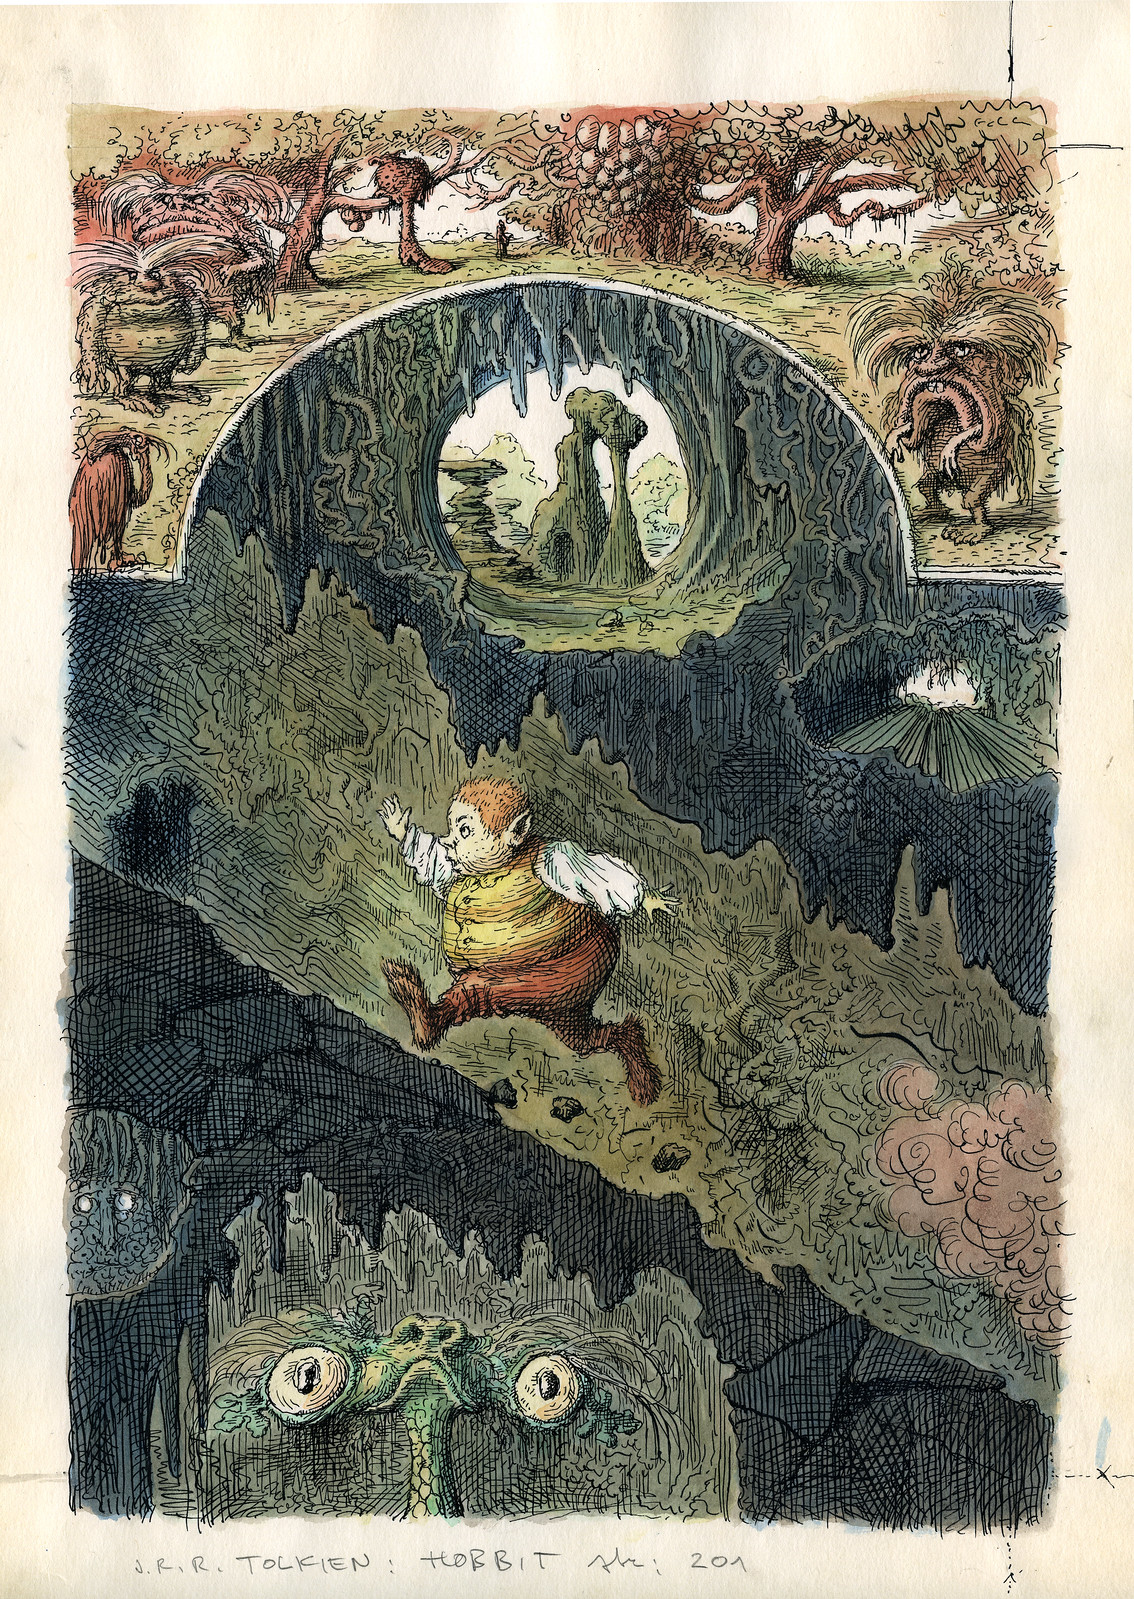 Peter Klucik -The Hobbit, Illustration 14